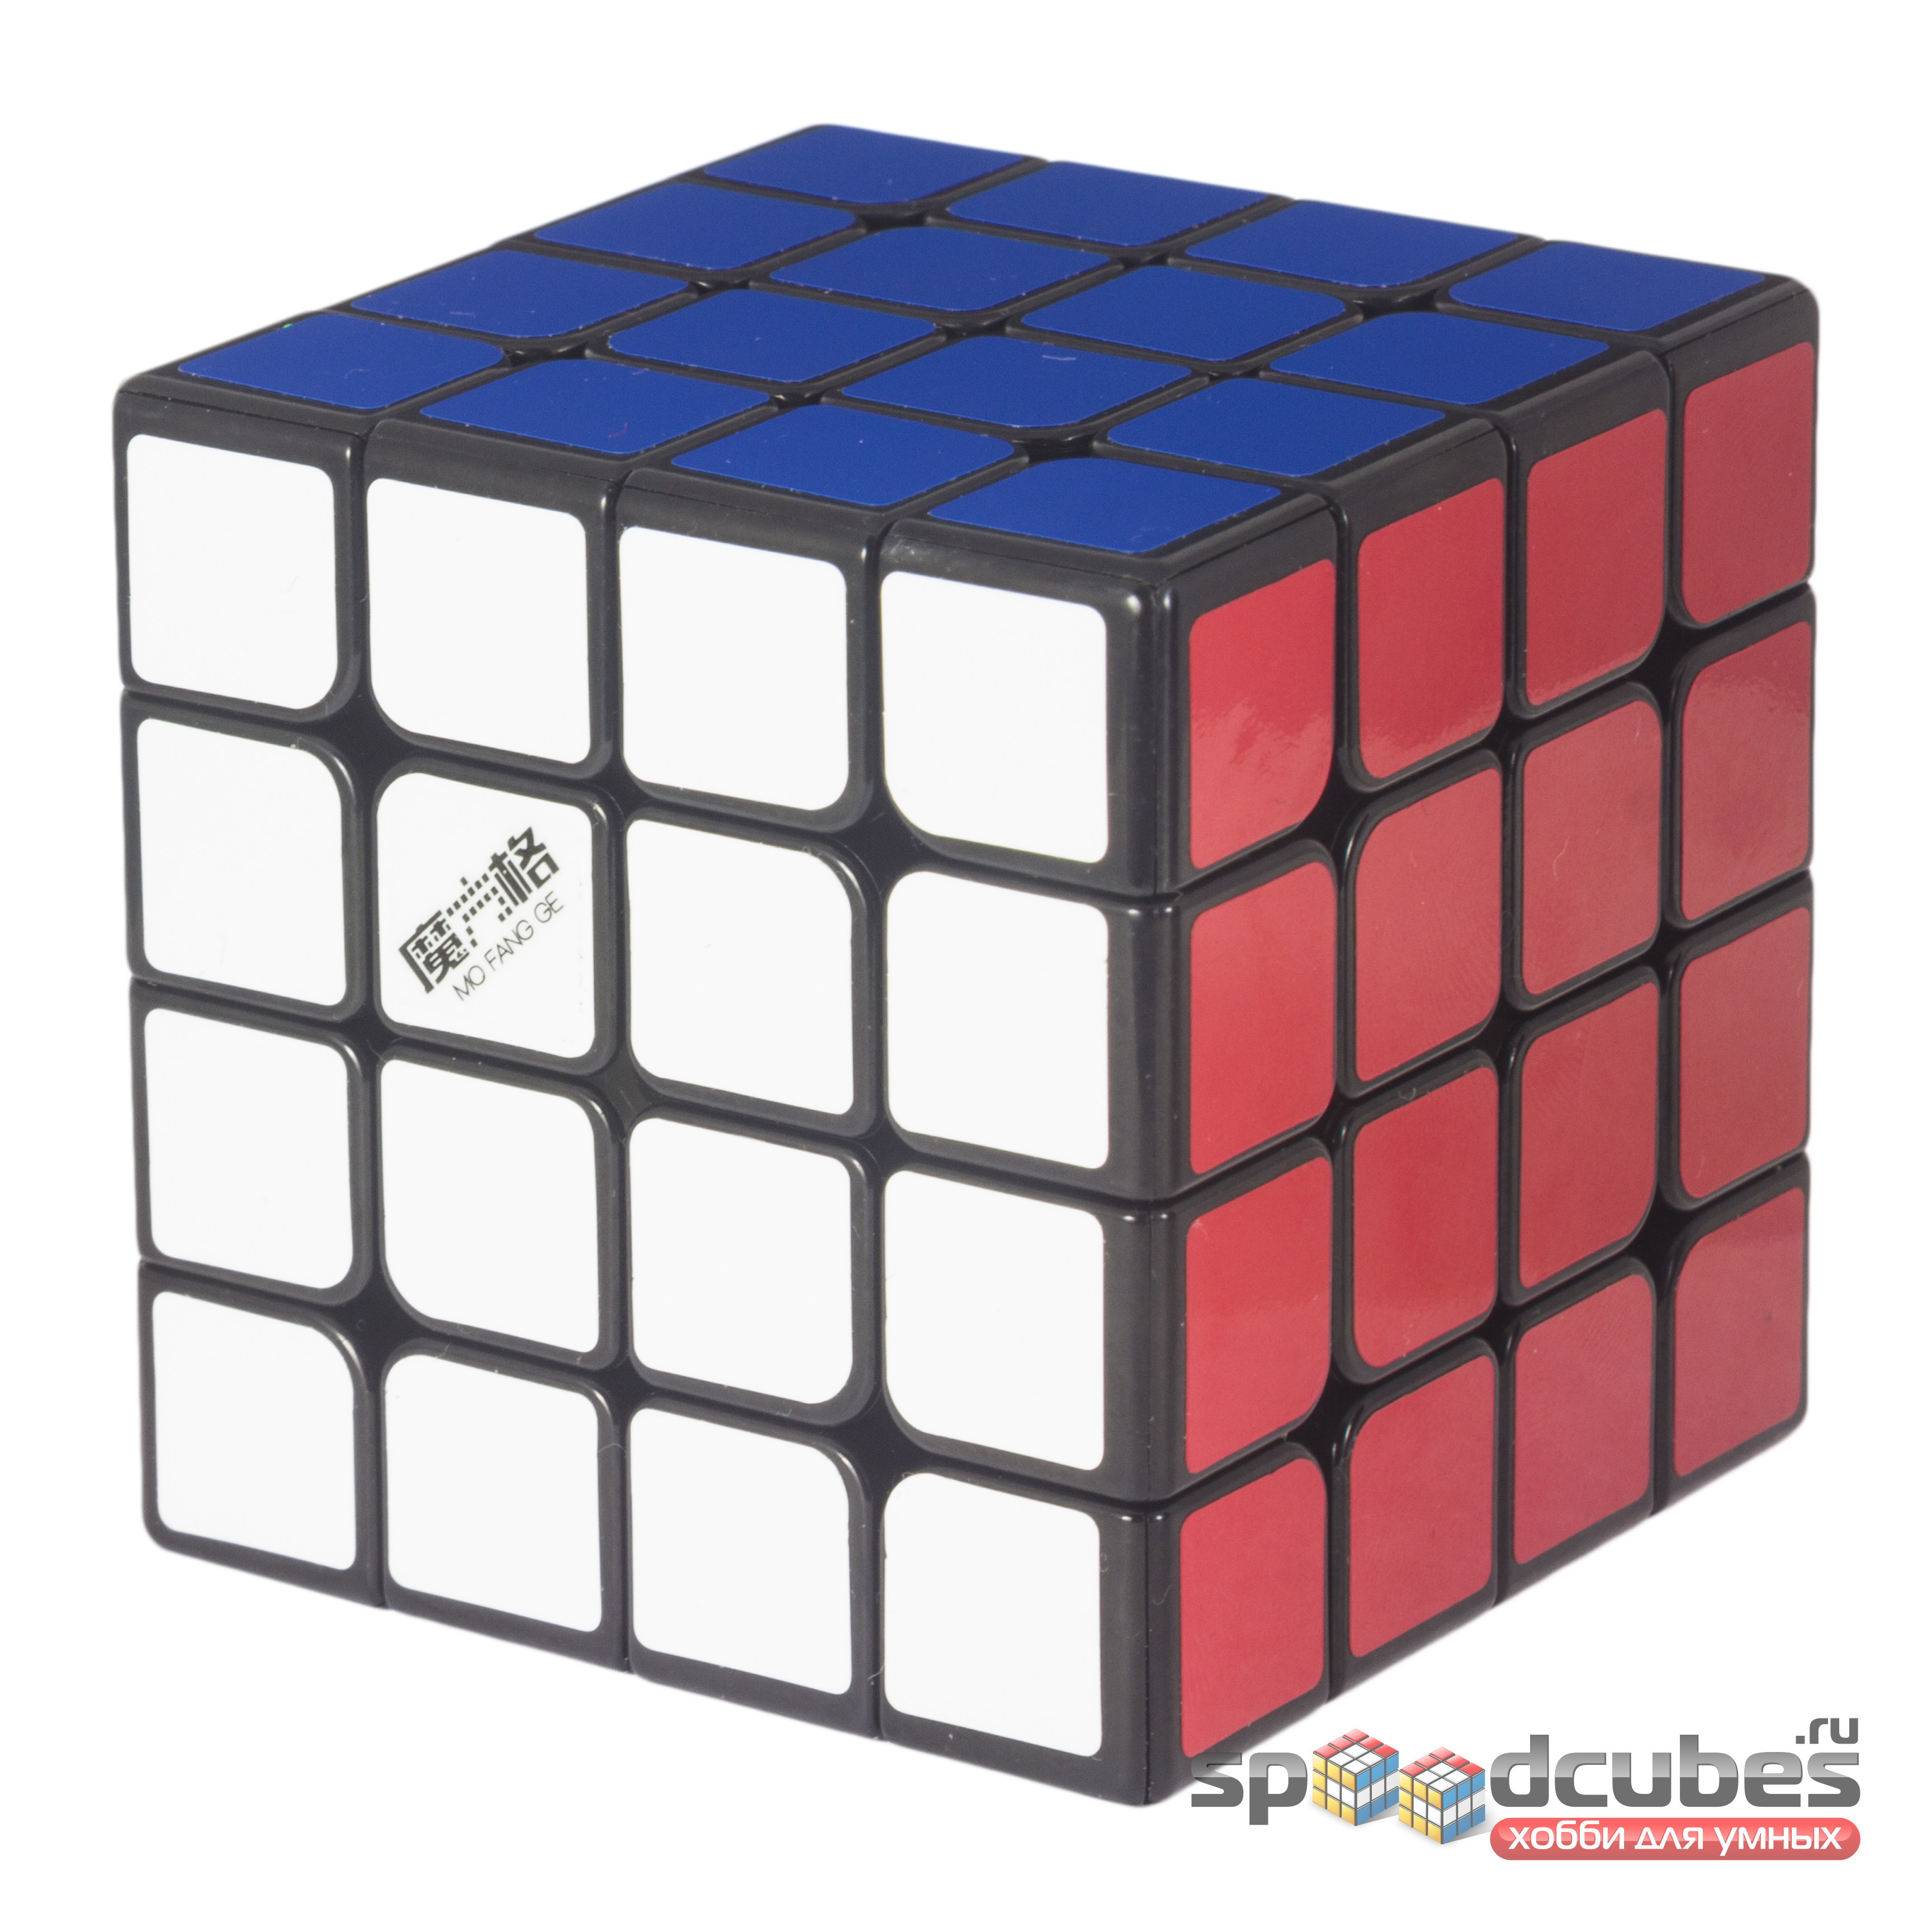 Qiyi Mofangge 4x4x4 Wuque Mini Black 3